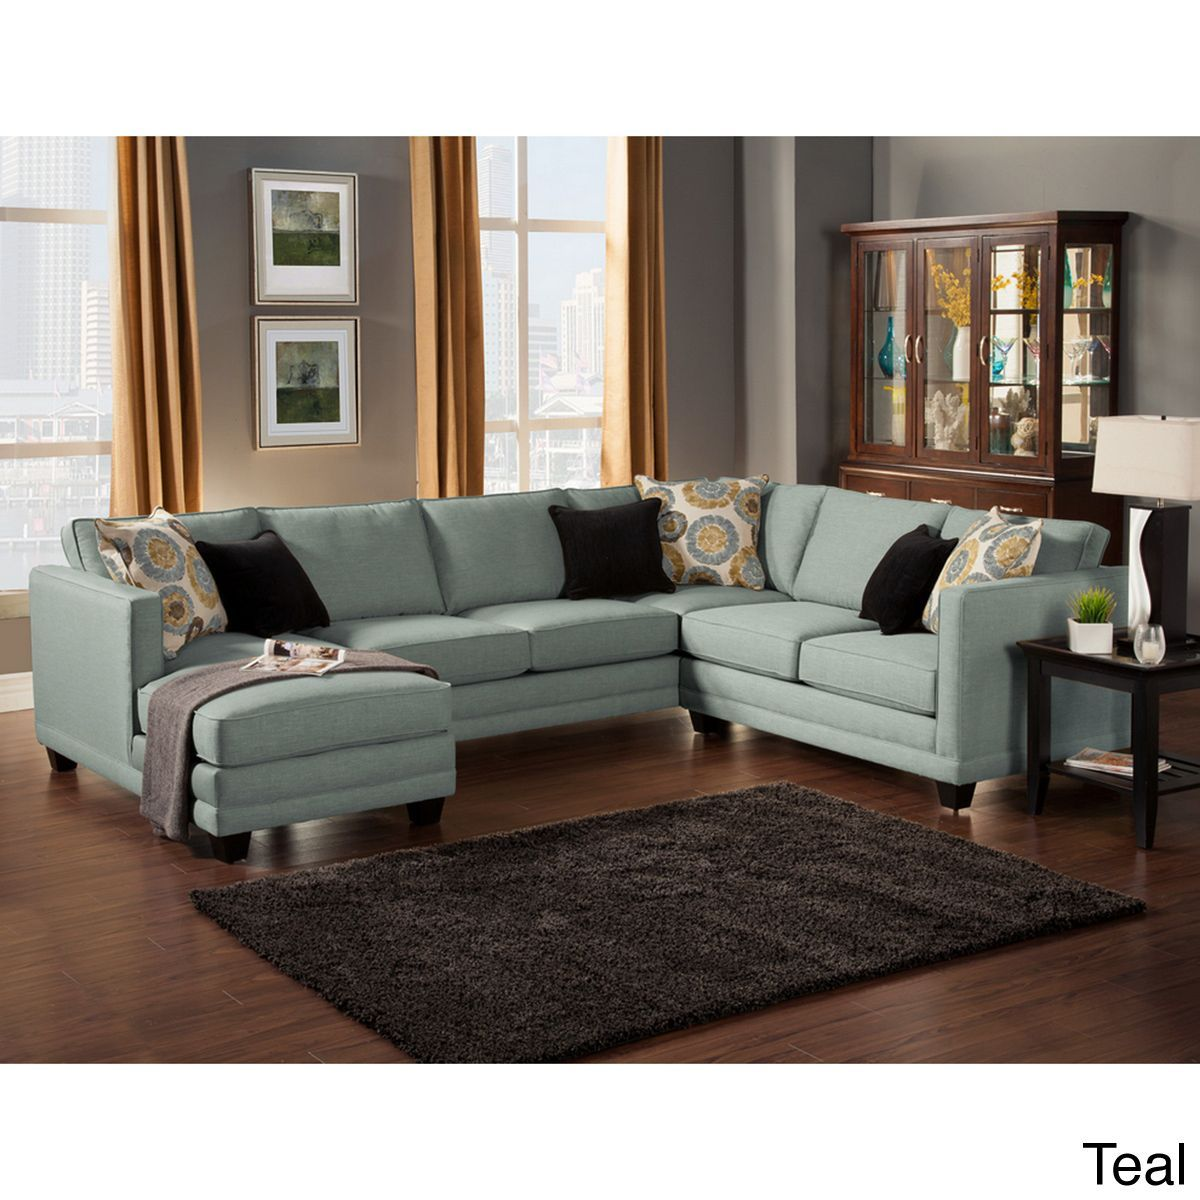 Best Furniture Of America Zeal Lavish Contemporary 3 Piece 400 x 300